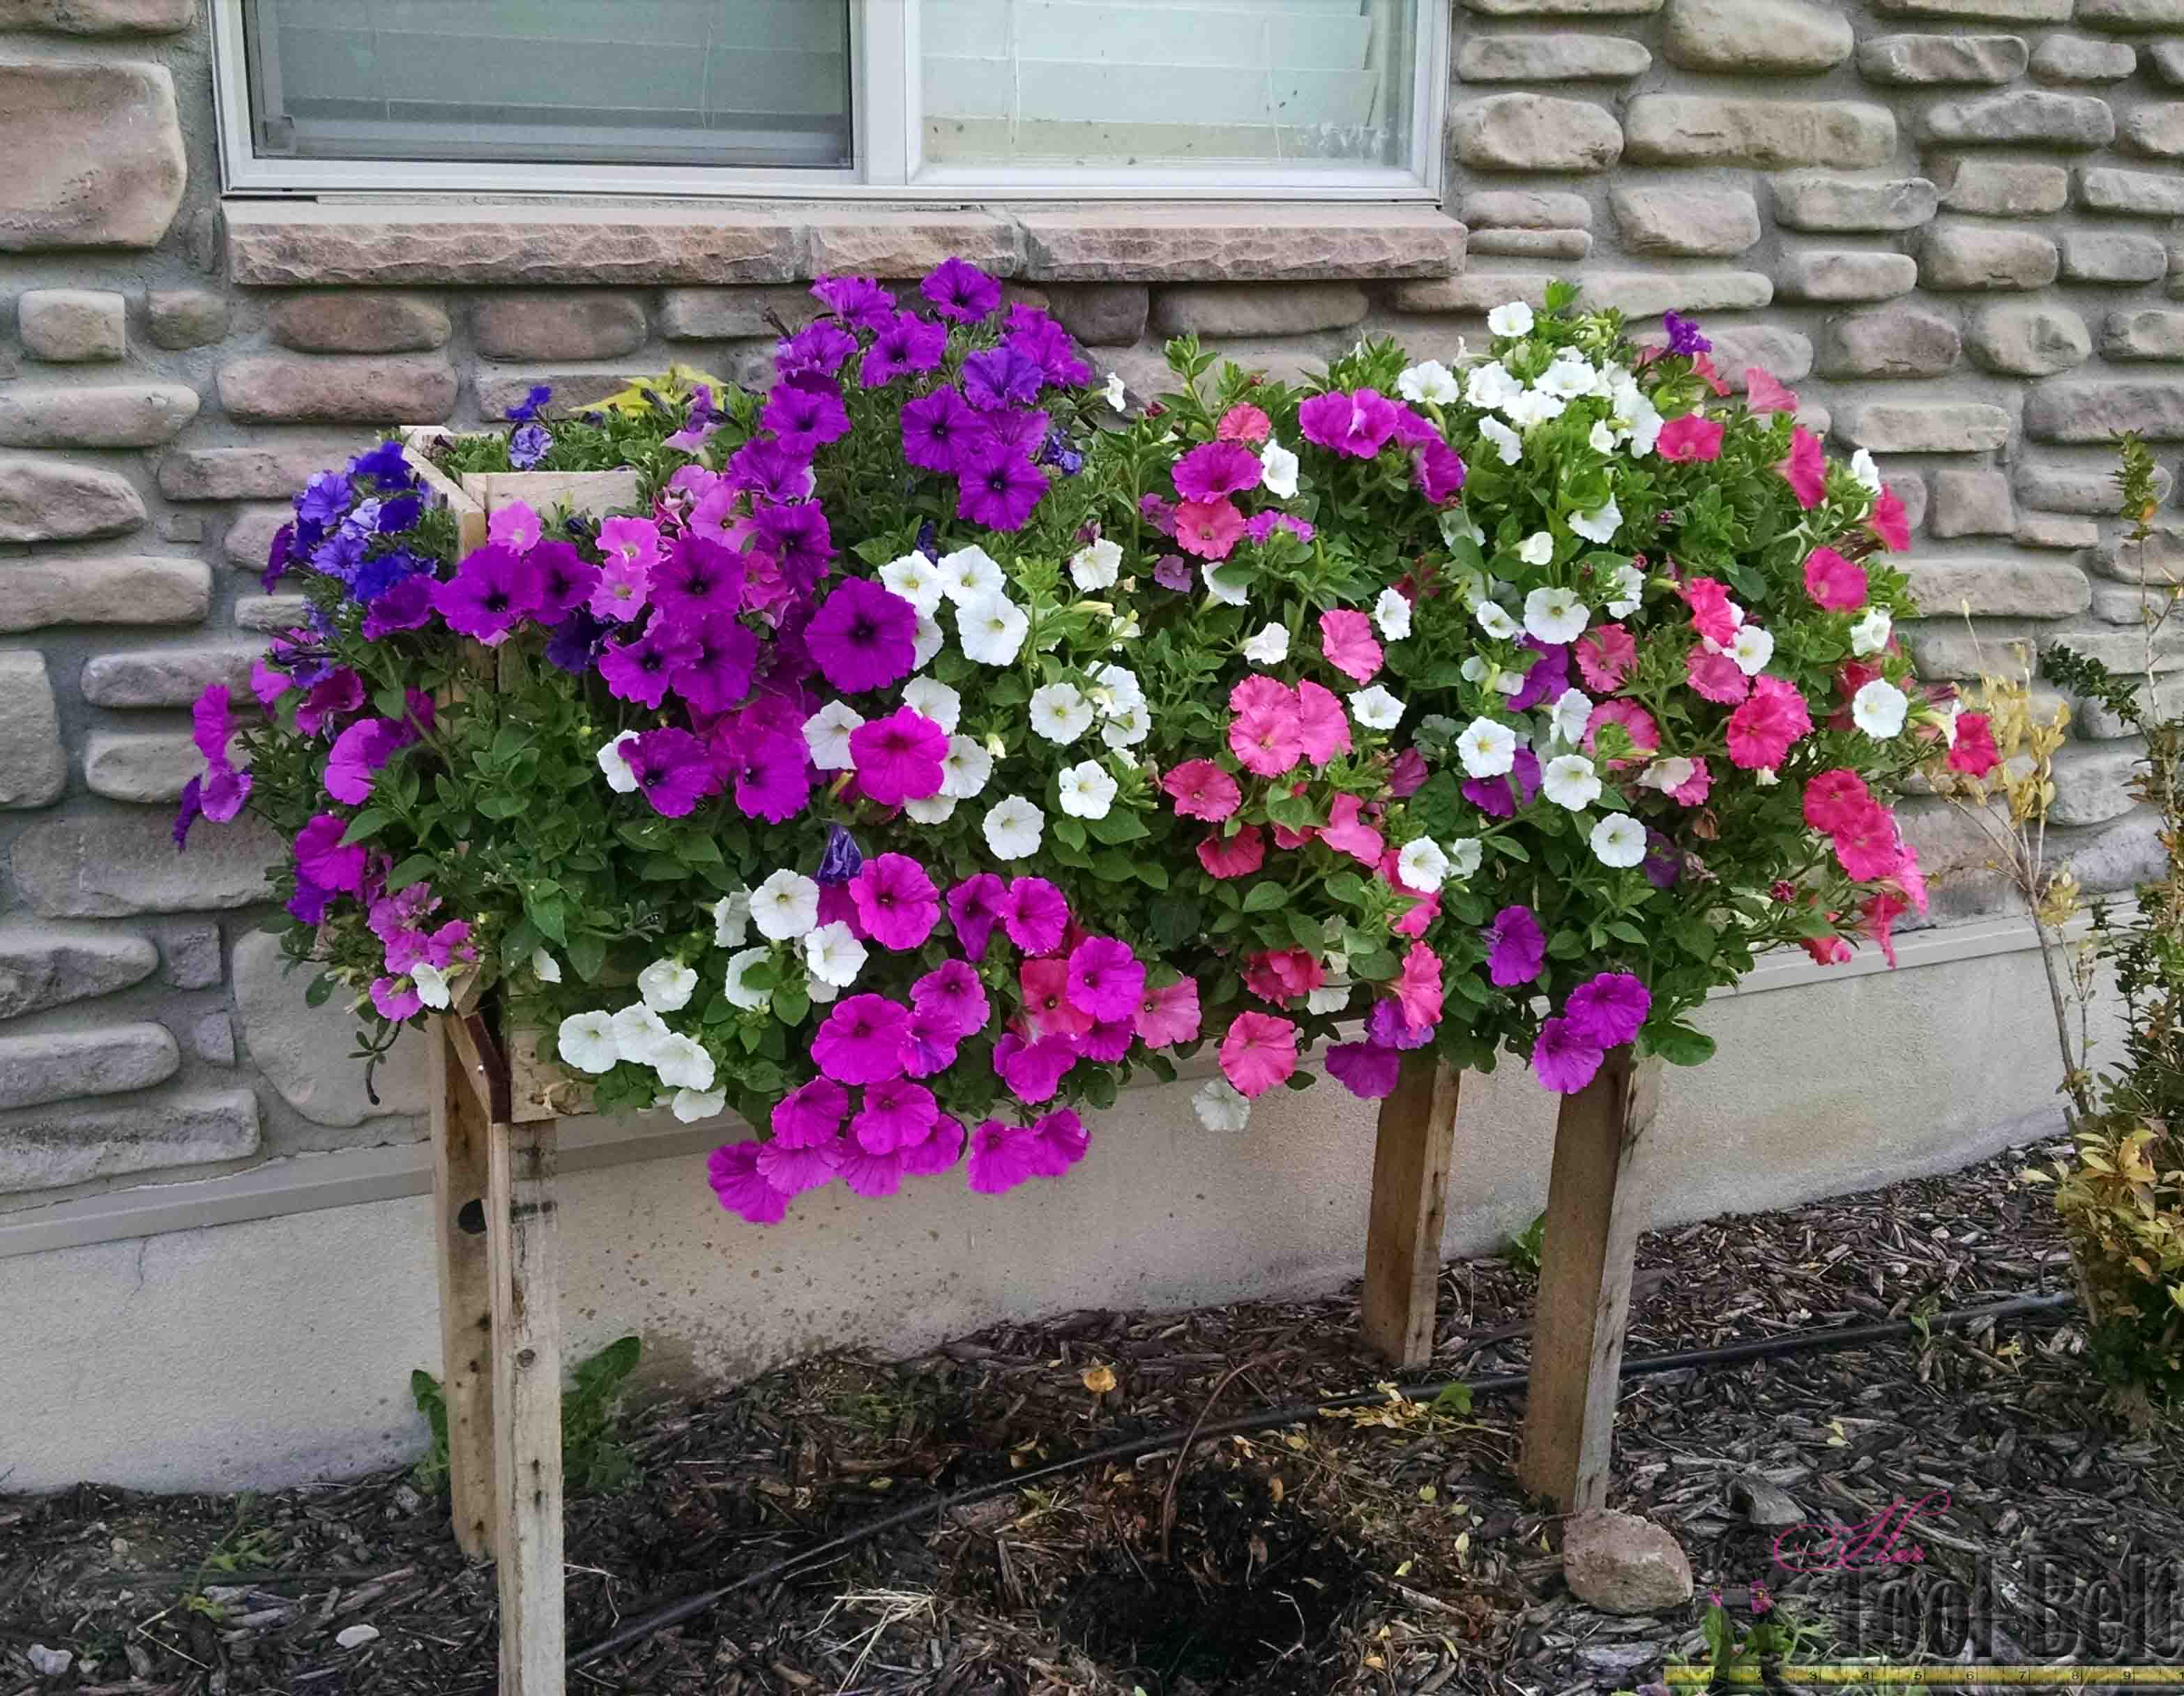 Make a Cascading Flower Planter Box from Pallets